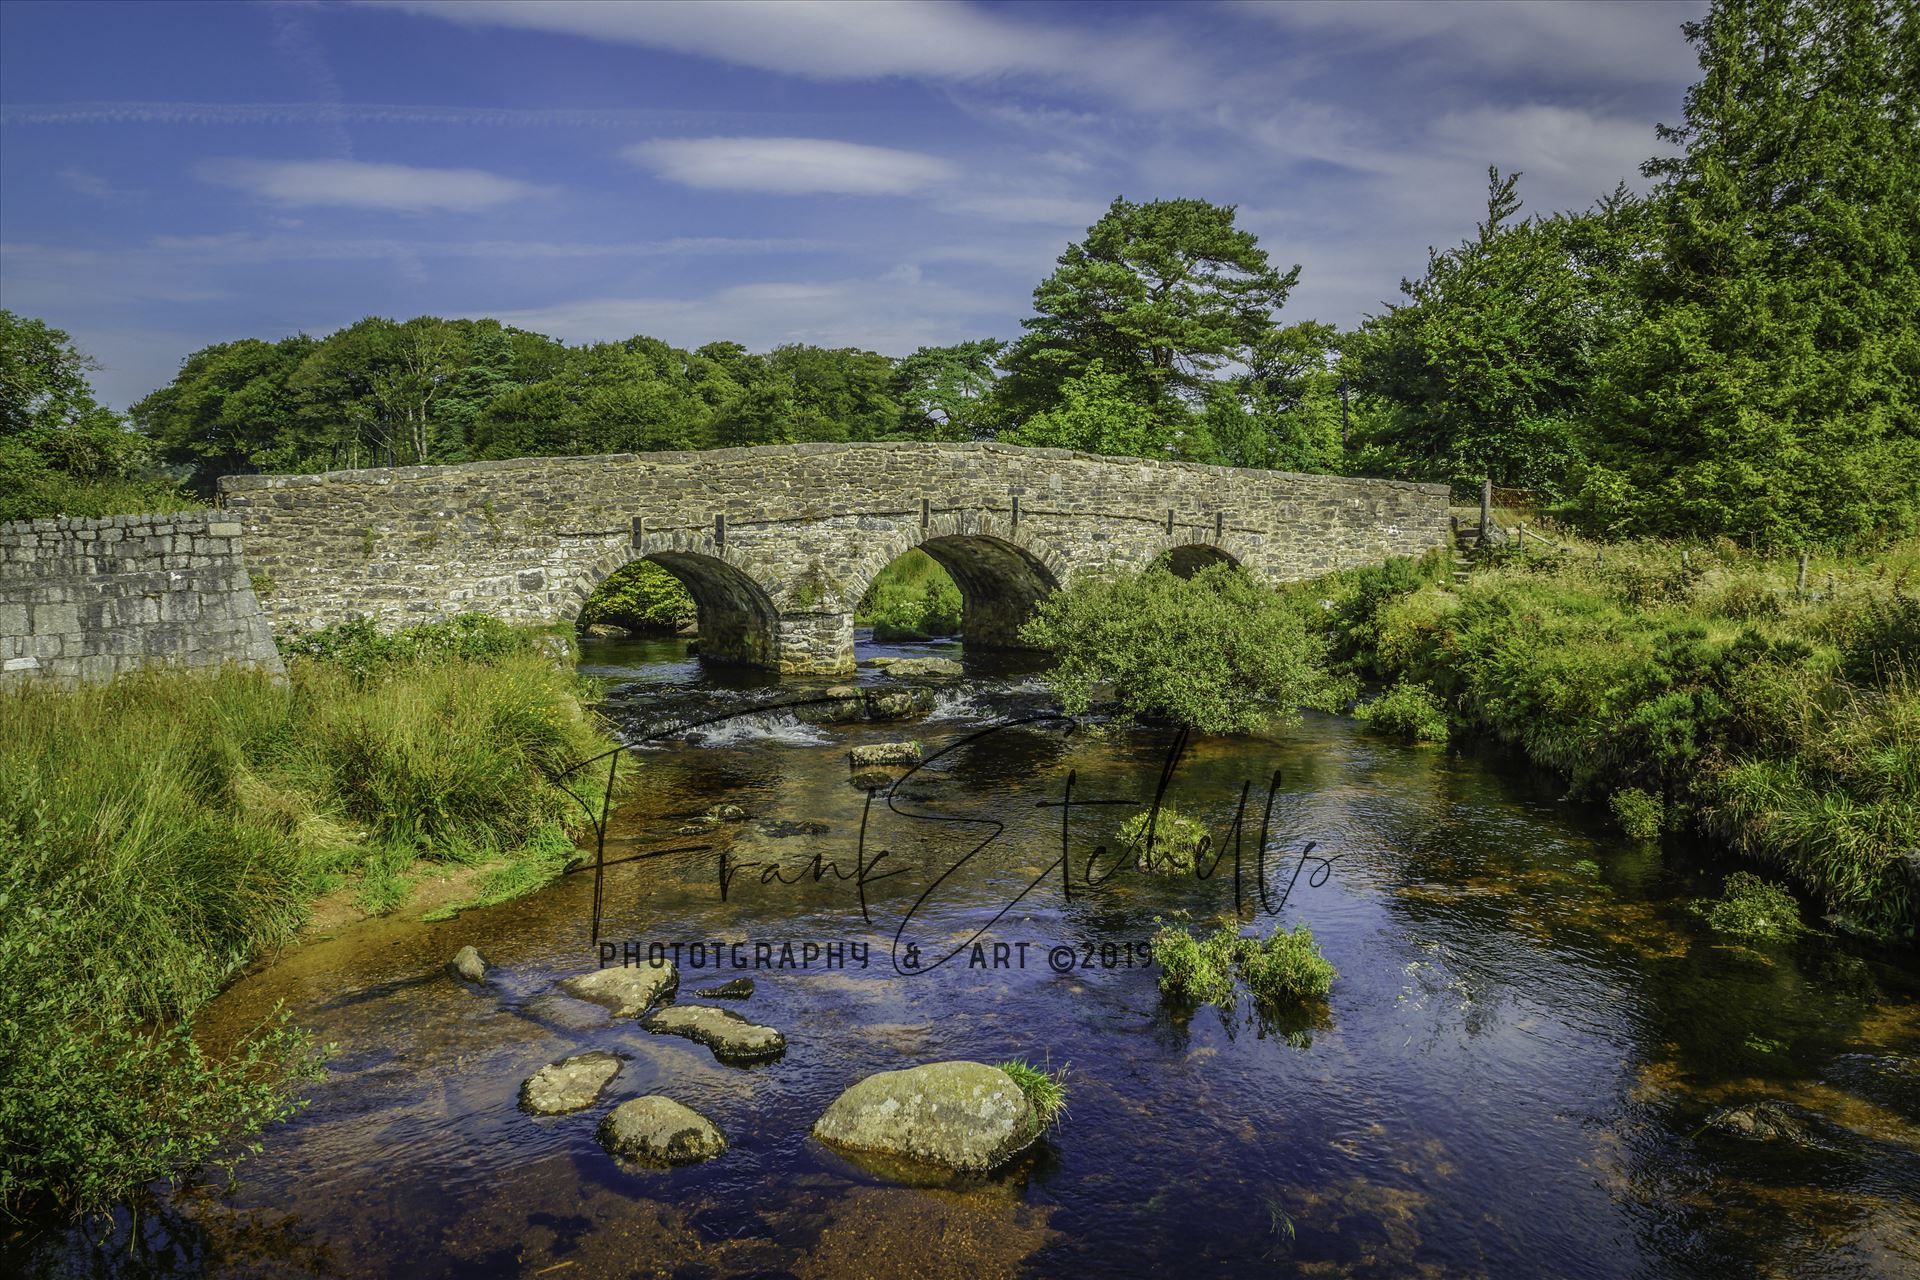 East Dart River Bridge 5 - A view of the bridge over the East Dart River at Postbridge, Dartmoor National Park from the